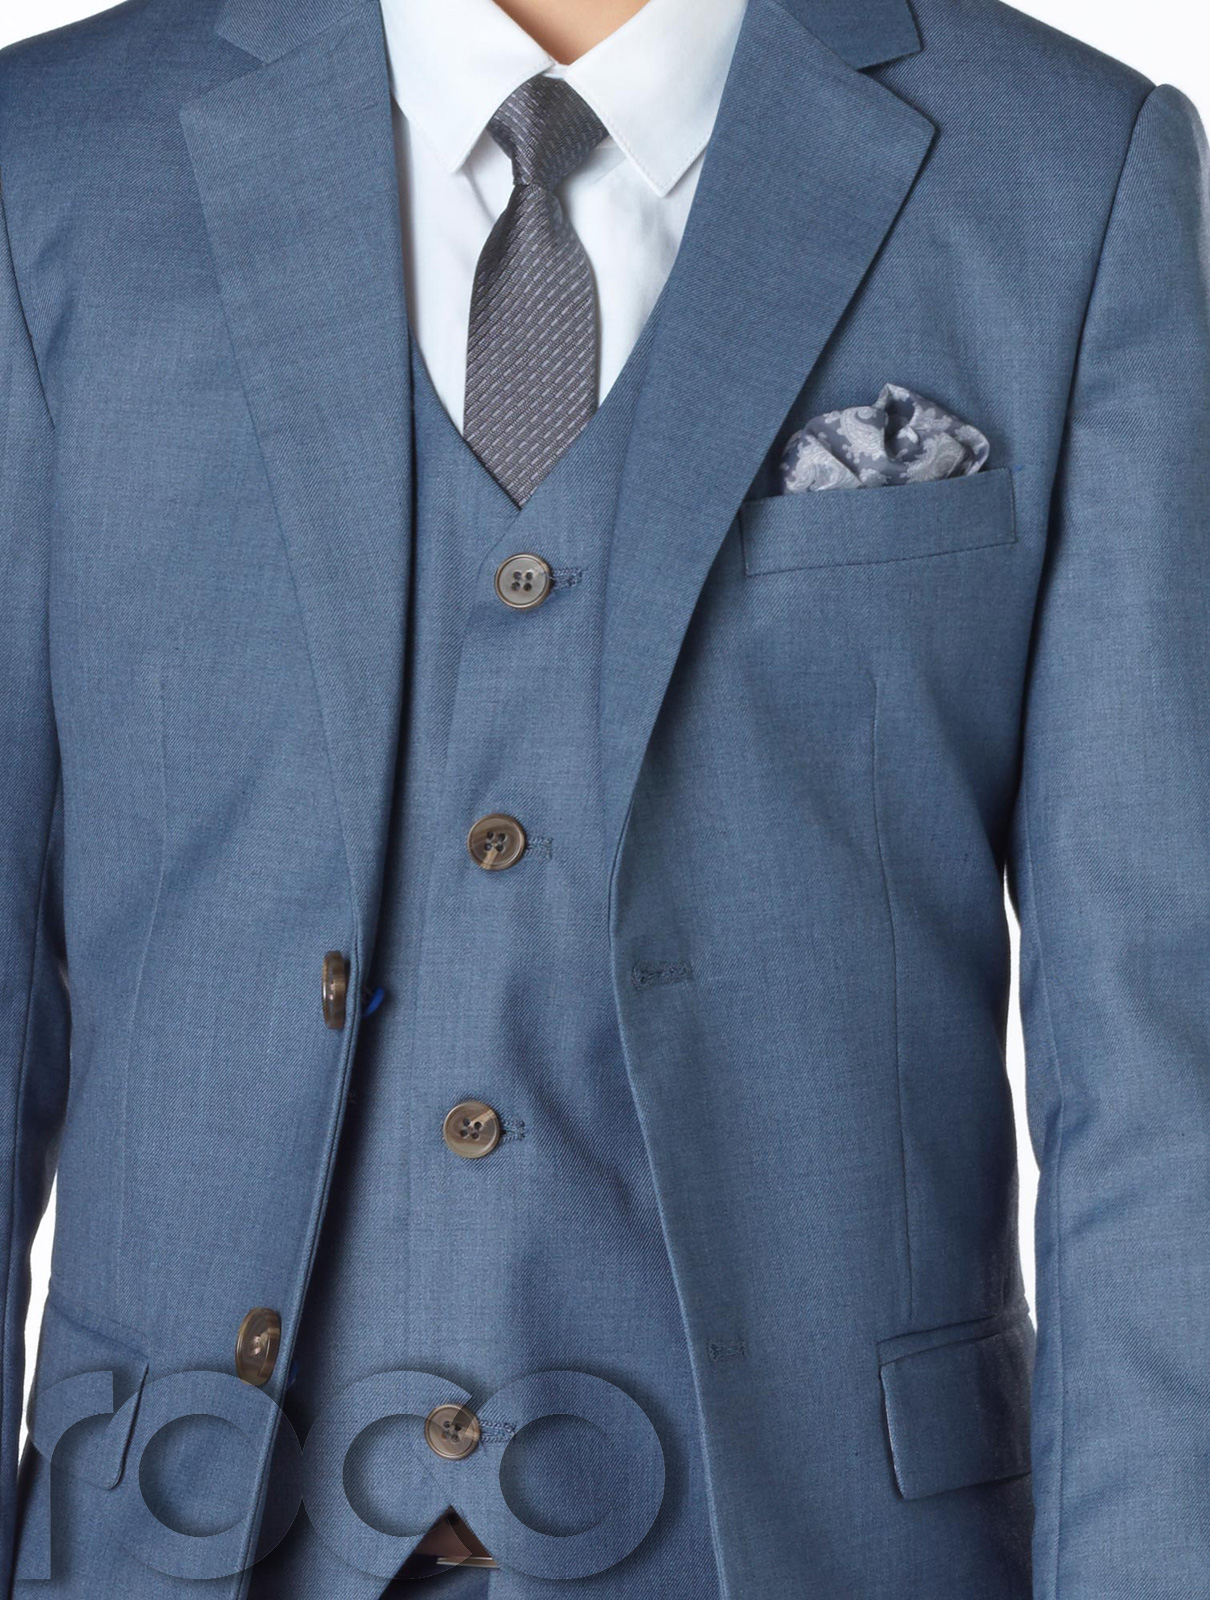 0023a1c8142a Chambray Blue Suit